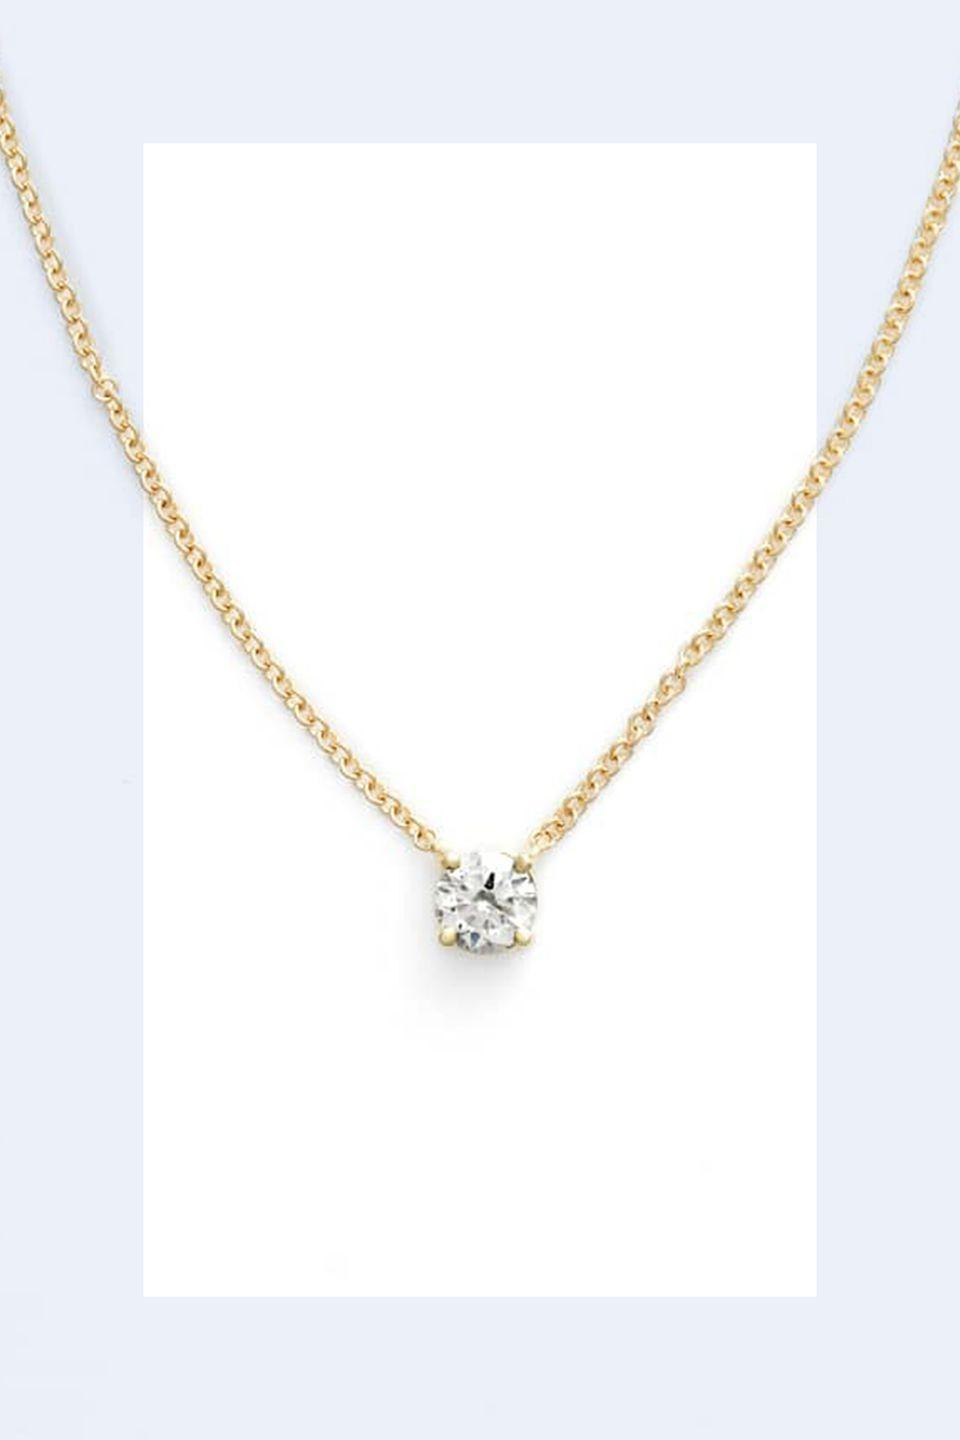 """<p><a rel=""""nofollow noopener"""" href=""""https://shop.nordstrom.com/s/bony-levy-liora-solitaire-diamond-pendant-necklace-nordstrom-exclusive/4797839?origin=coordinating-4797839-0-1-PDP_1-recbot-also_viewed&recs_placement=PDP_1&recs_strategy=also_viewed&recs_source=recbot&recs_page_type=product"""" target=""""_blank"""" data-ylk=""""slk:SHOP NOW"""" class=""""link rapid-noclick-resp"""">SHOP NOW</a> <em>Bony Levy Diamond Necklace, $1,095</em></p><p>""""A lot of women tend to wear big statement necklaces and I think that more often than not it looks unsophisticated and cheap. It can make an outfit pop in the wrong way. It's chicer to err on the side of minimalism."""" -<em><a rel=""""nofollow noopener"""" href=""""http://www.andrewgelwicks.com/"""" target=""""_blank"""" data-ylk=""""slk:Andrew Gelwicks"""" class=""""link rapid-noclick-resp"""">Andrew Gelwicks</a></em></p>"""